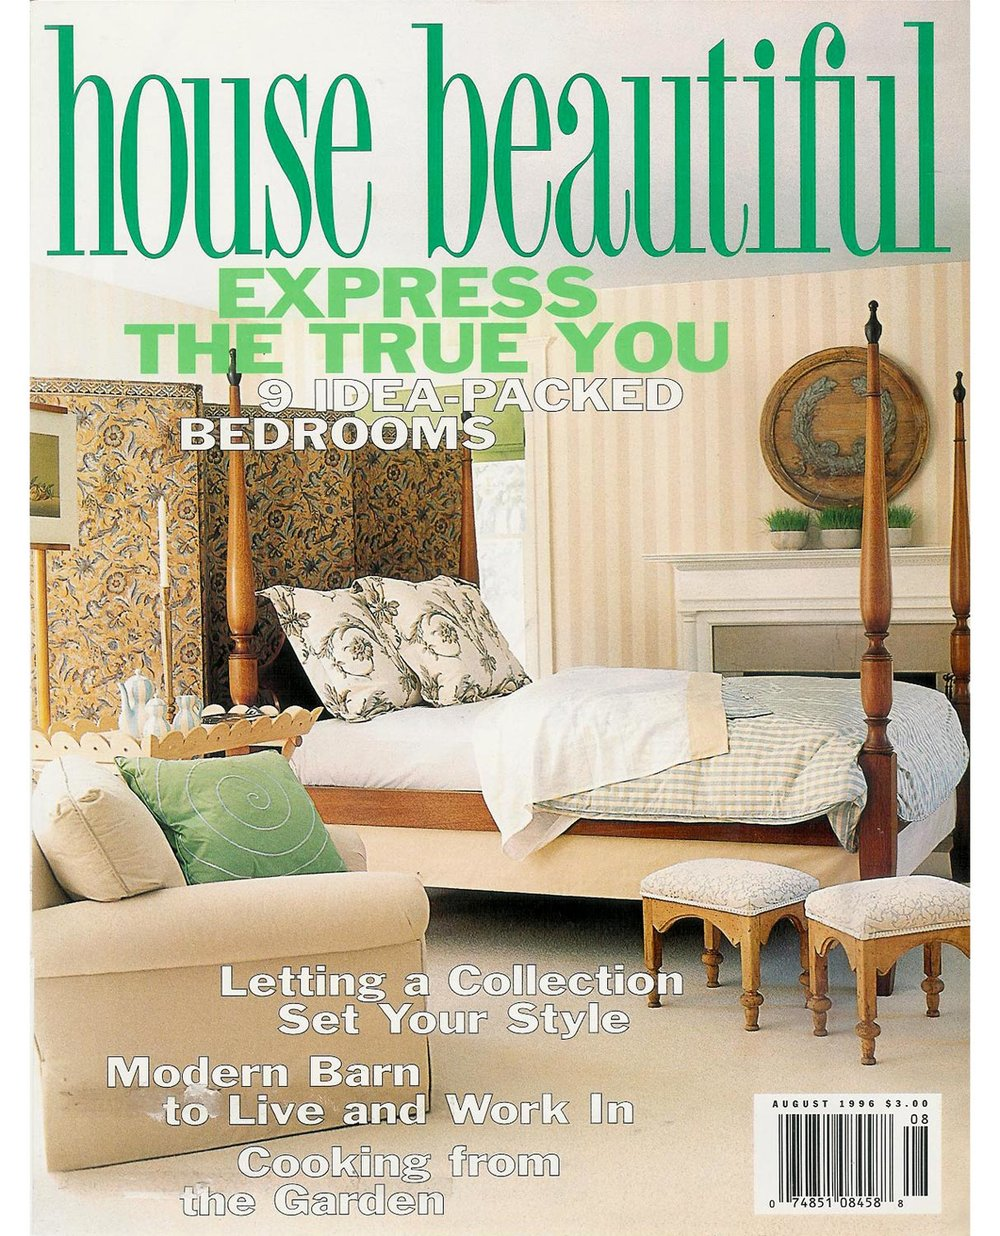 housebeautiful1996-cover_alemanmoore.jpg